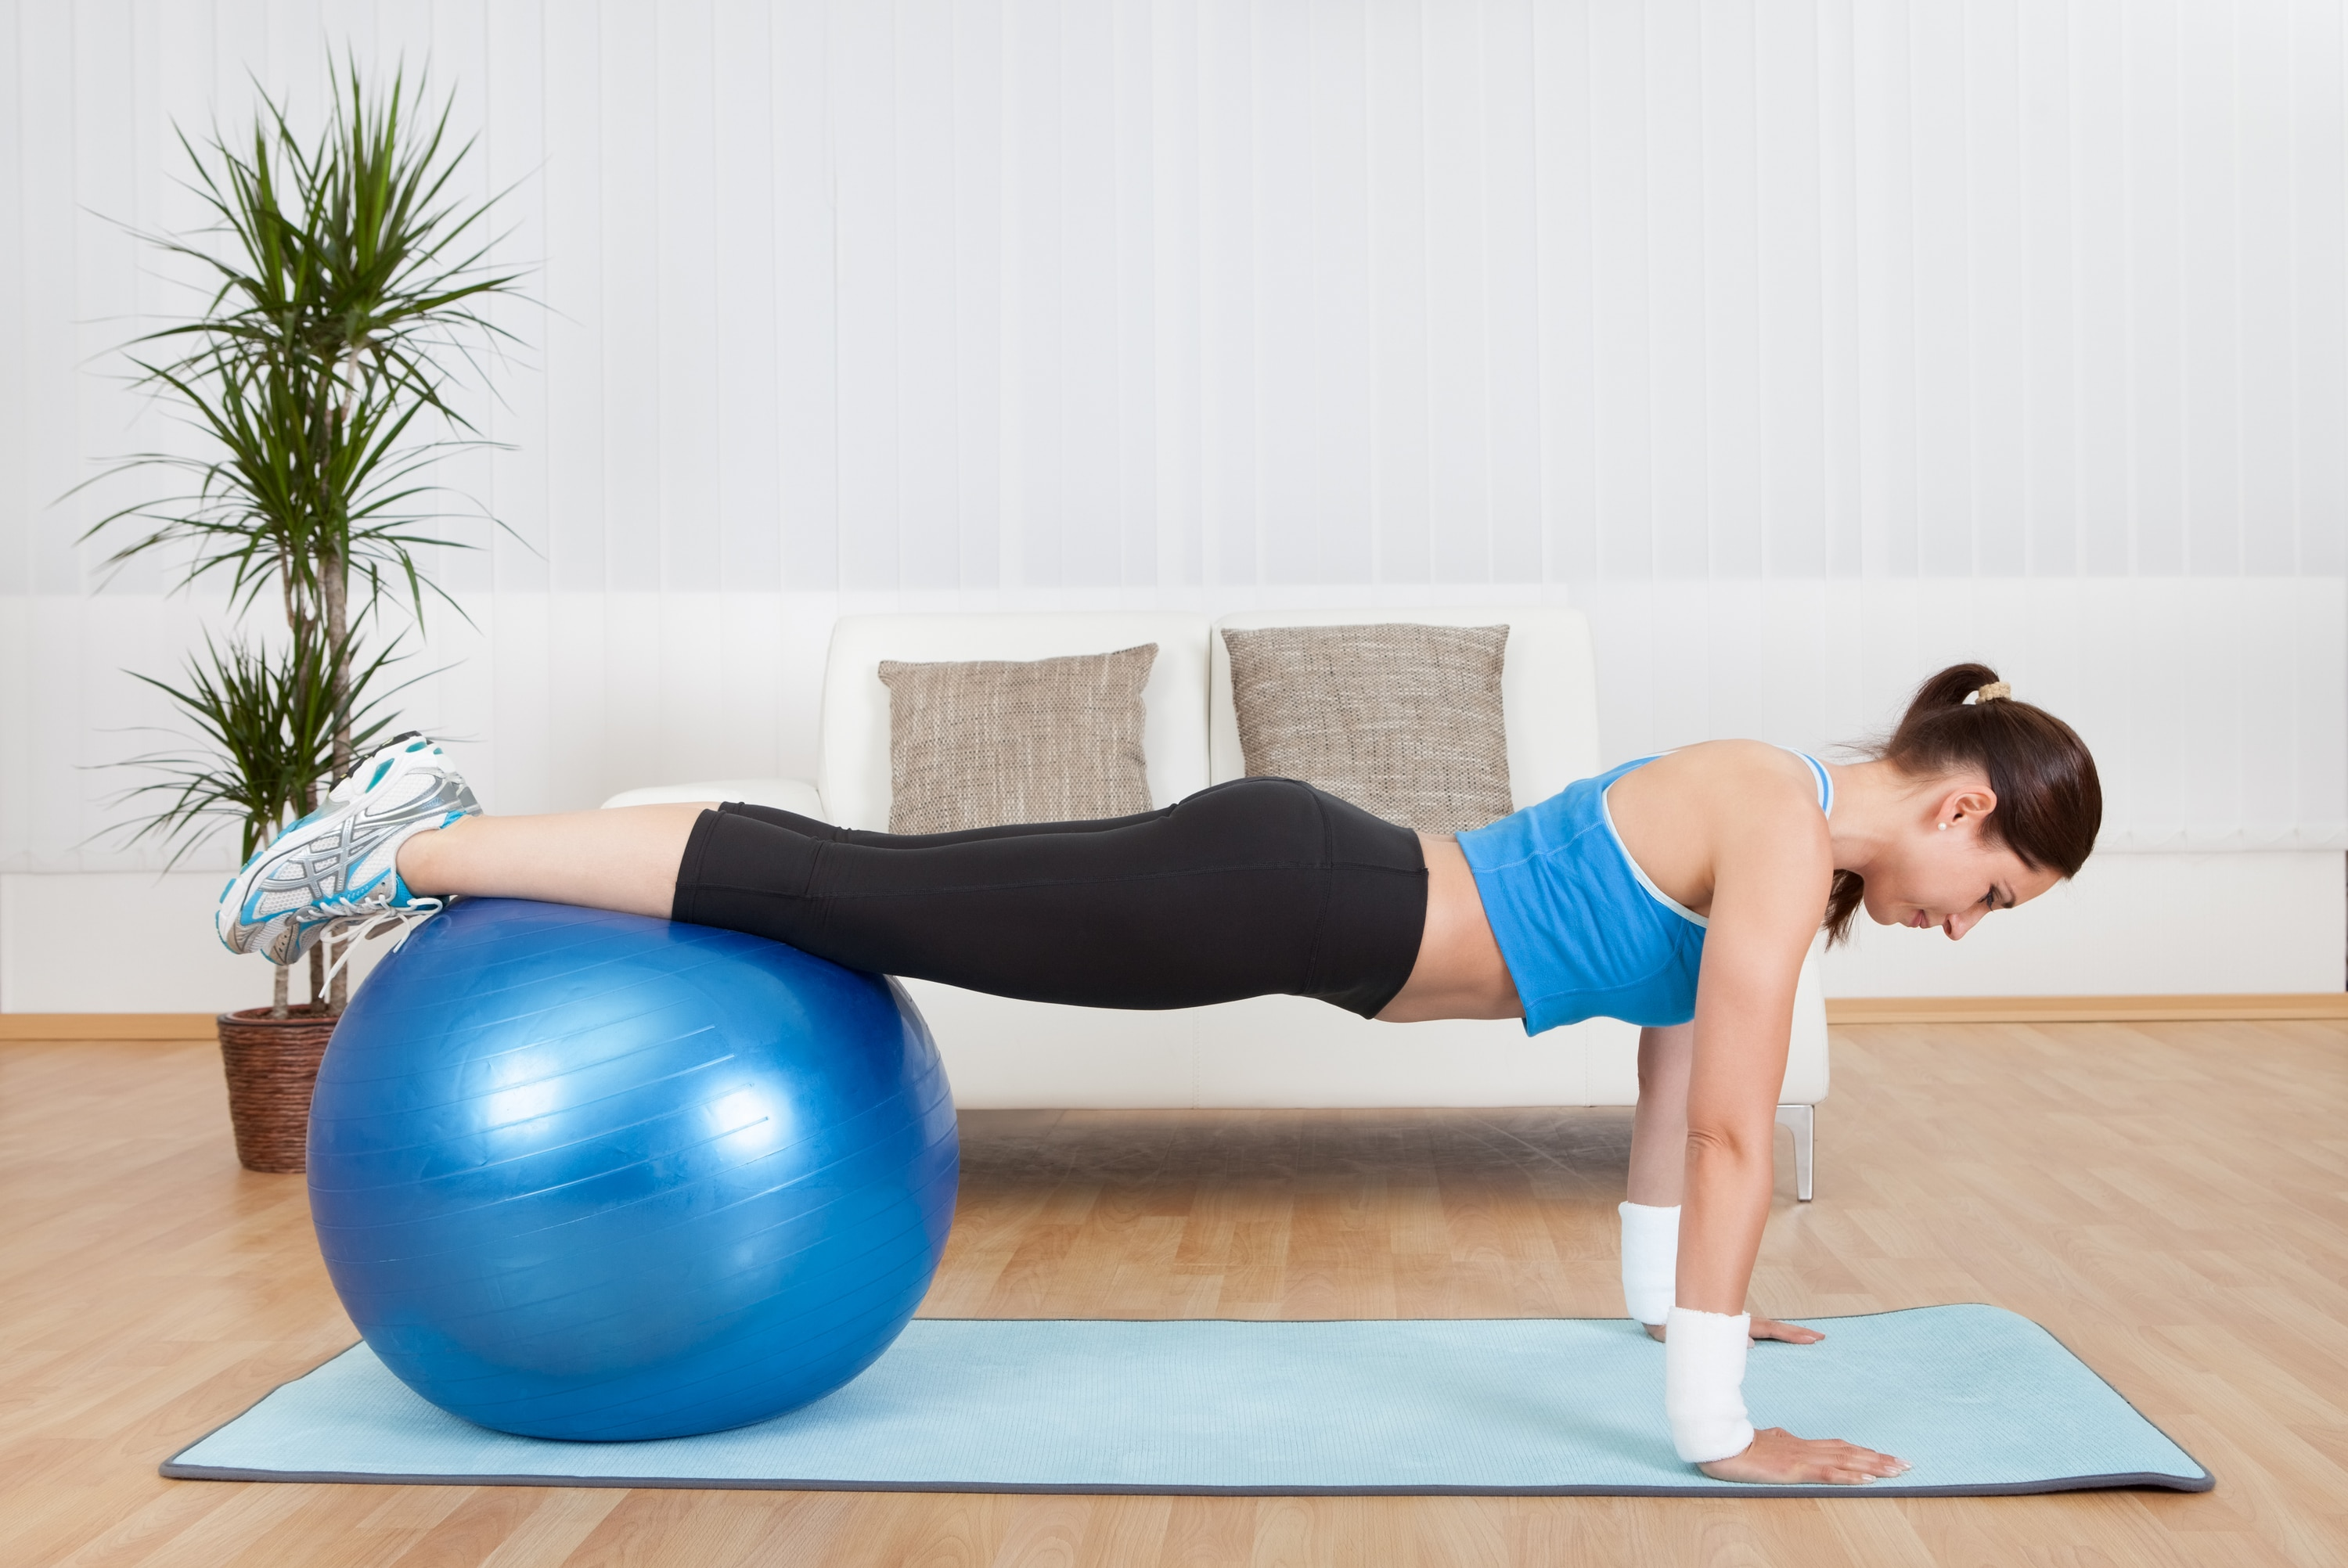 10 Best Stability Ball Exercises & Workouts